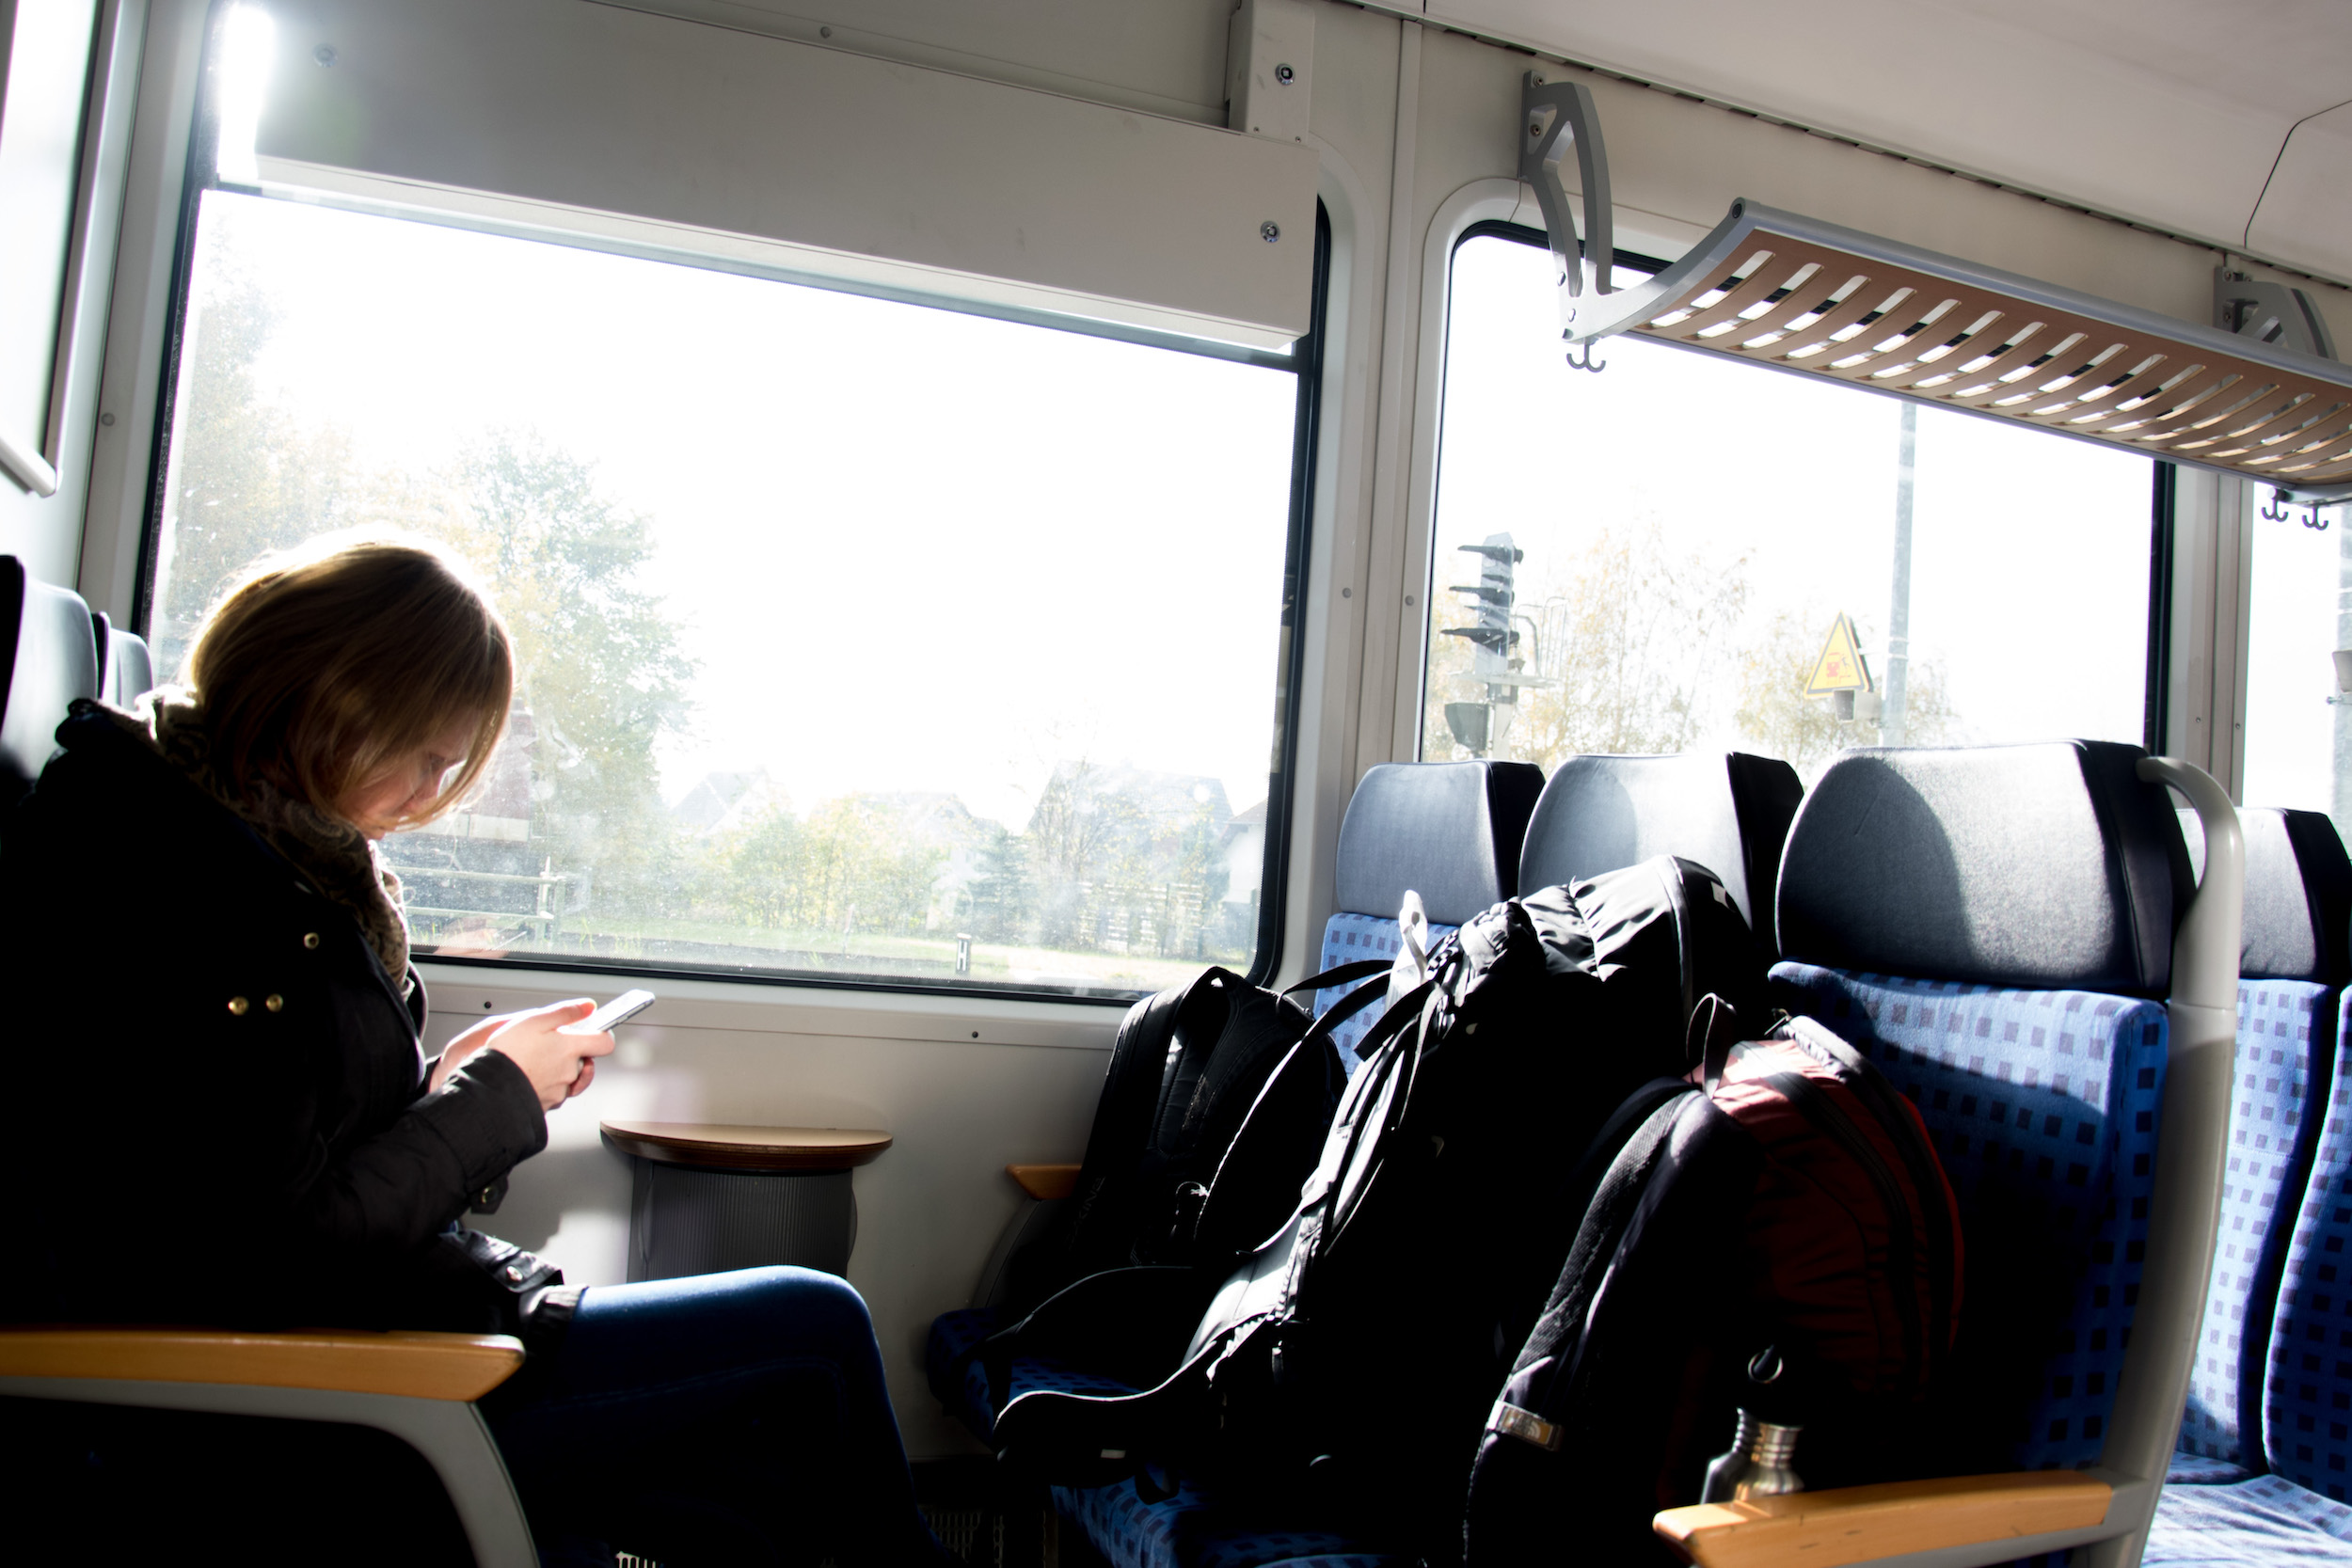 Train to Karlshagen